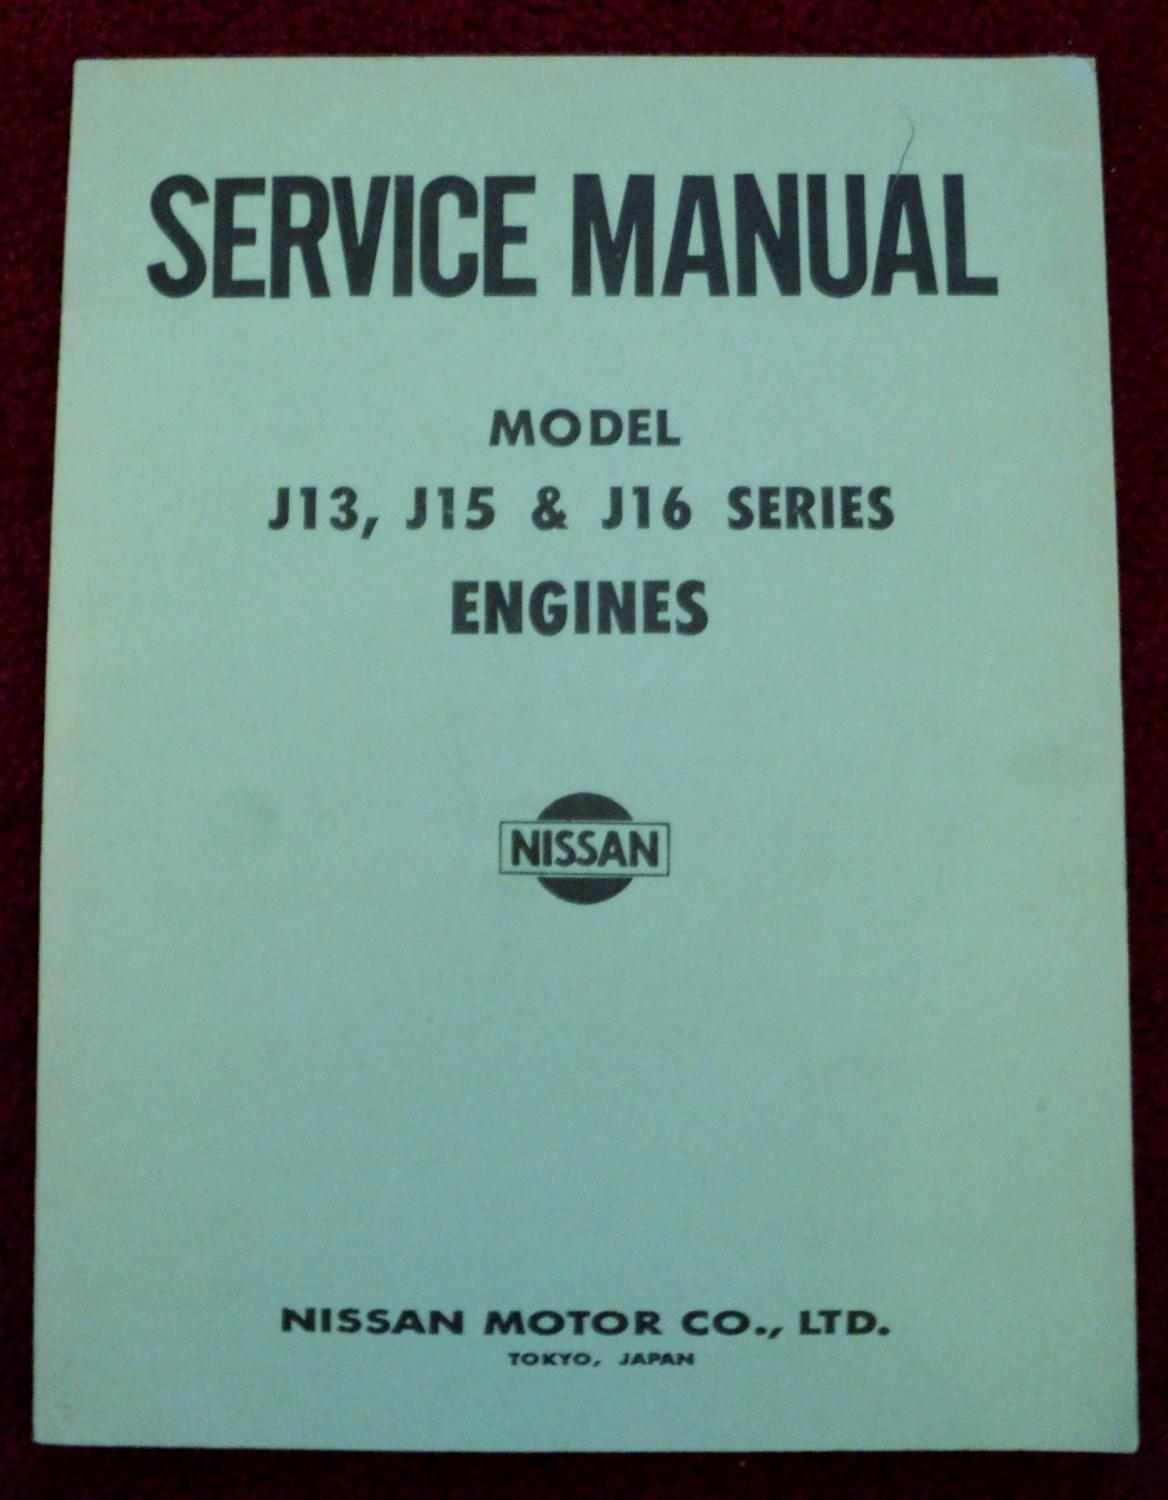 Nissan Service Manual - Engines J13, J15 & J16: Nissan Motor ...